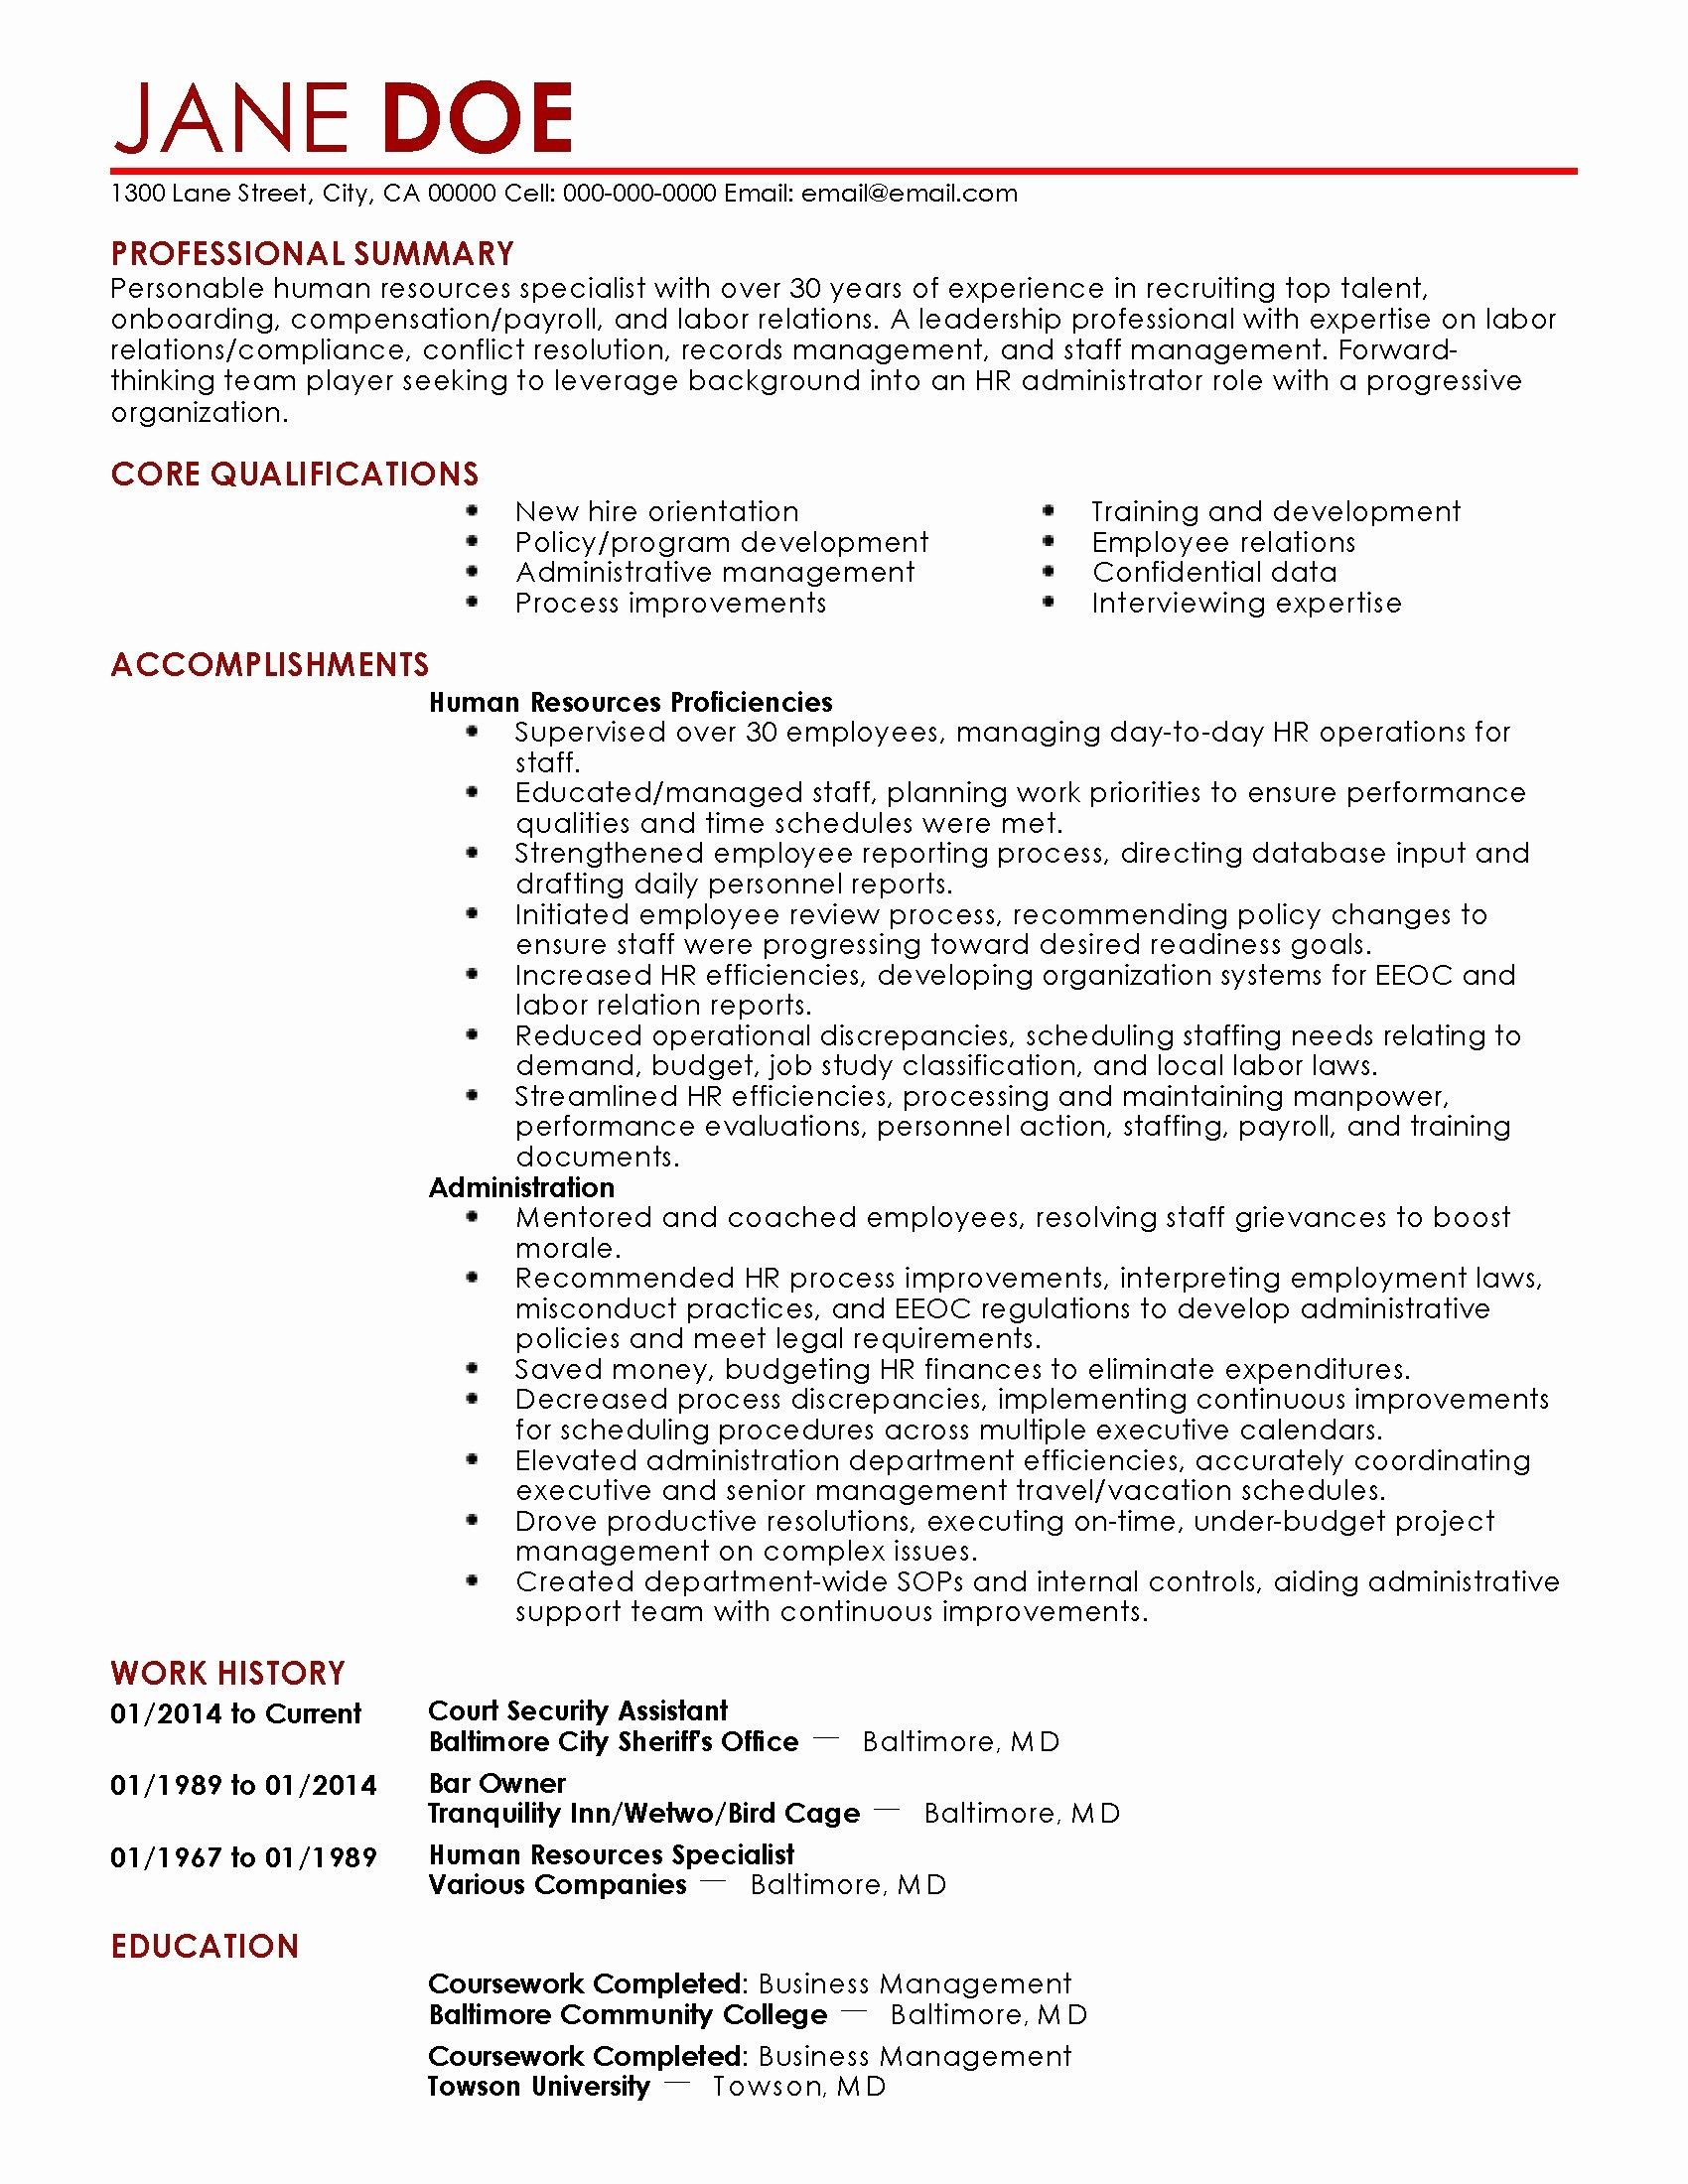 Medical assistant Resume Template Free - 19 Unique Medical assistant Resume Template